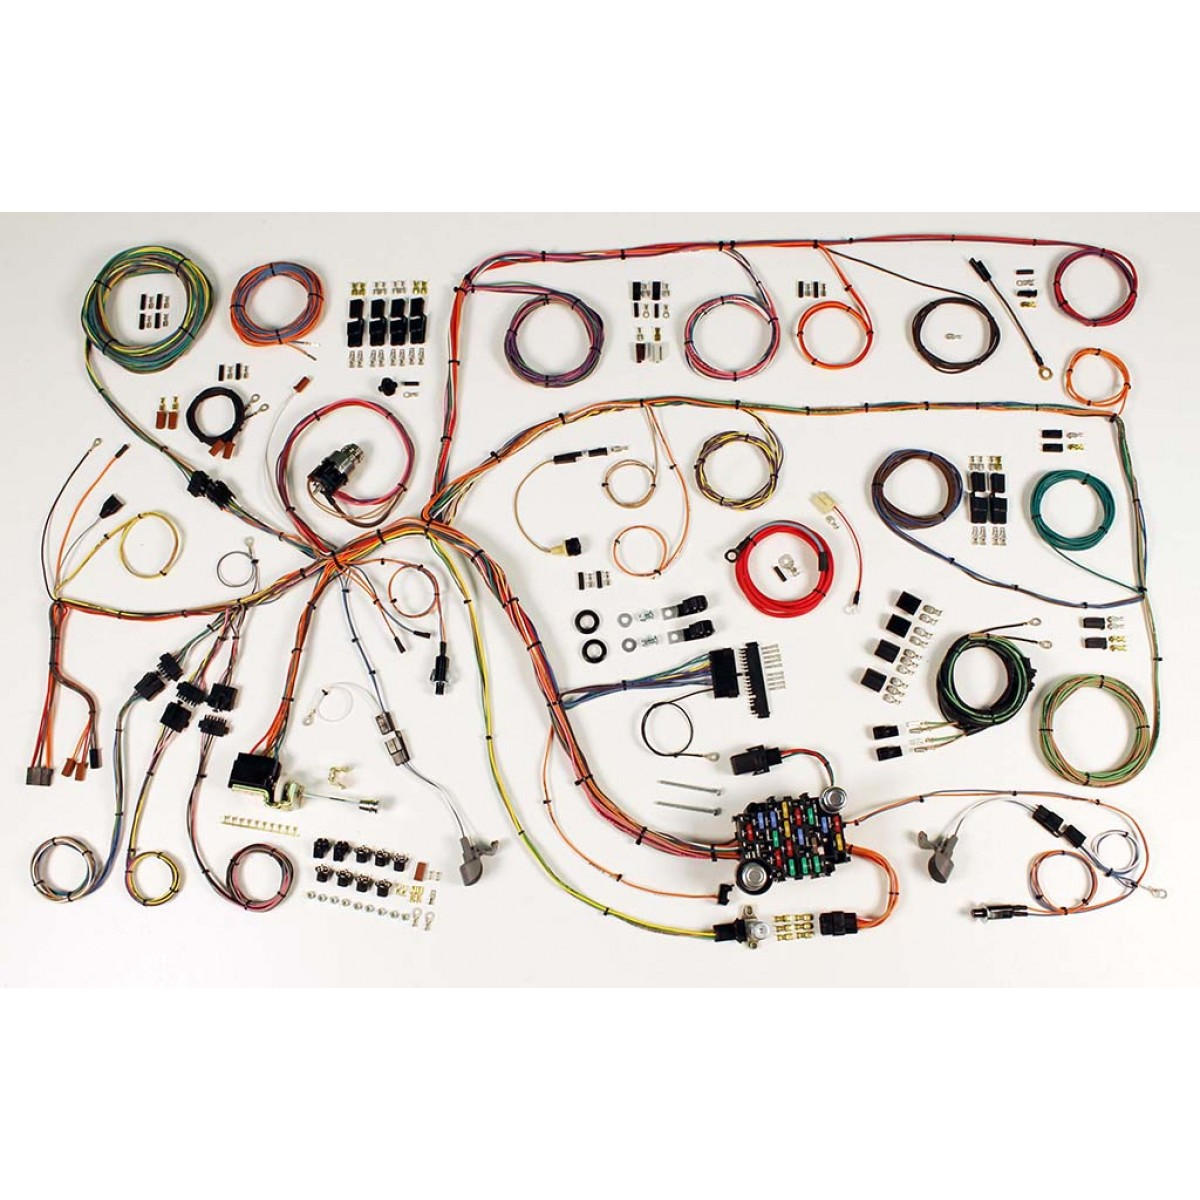 Comet Wiring Harness Diagram Data 65 Ford Mustang 1960 1964 Falcon Complete Kit Connectors